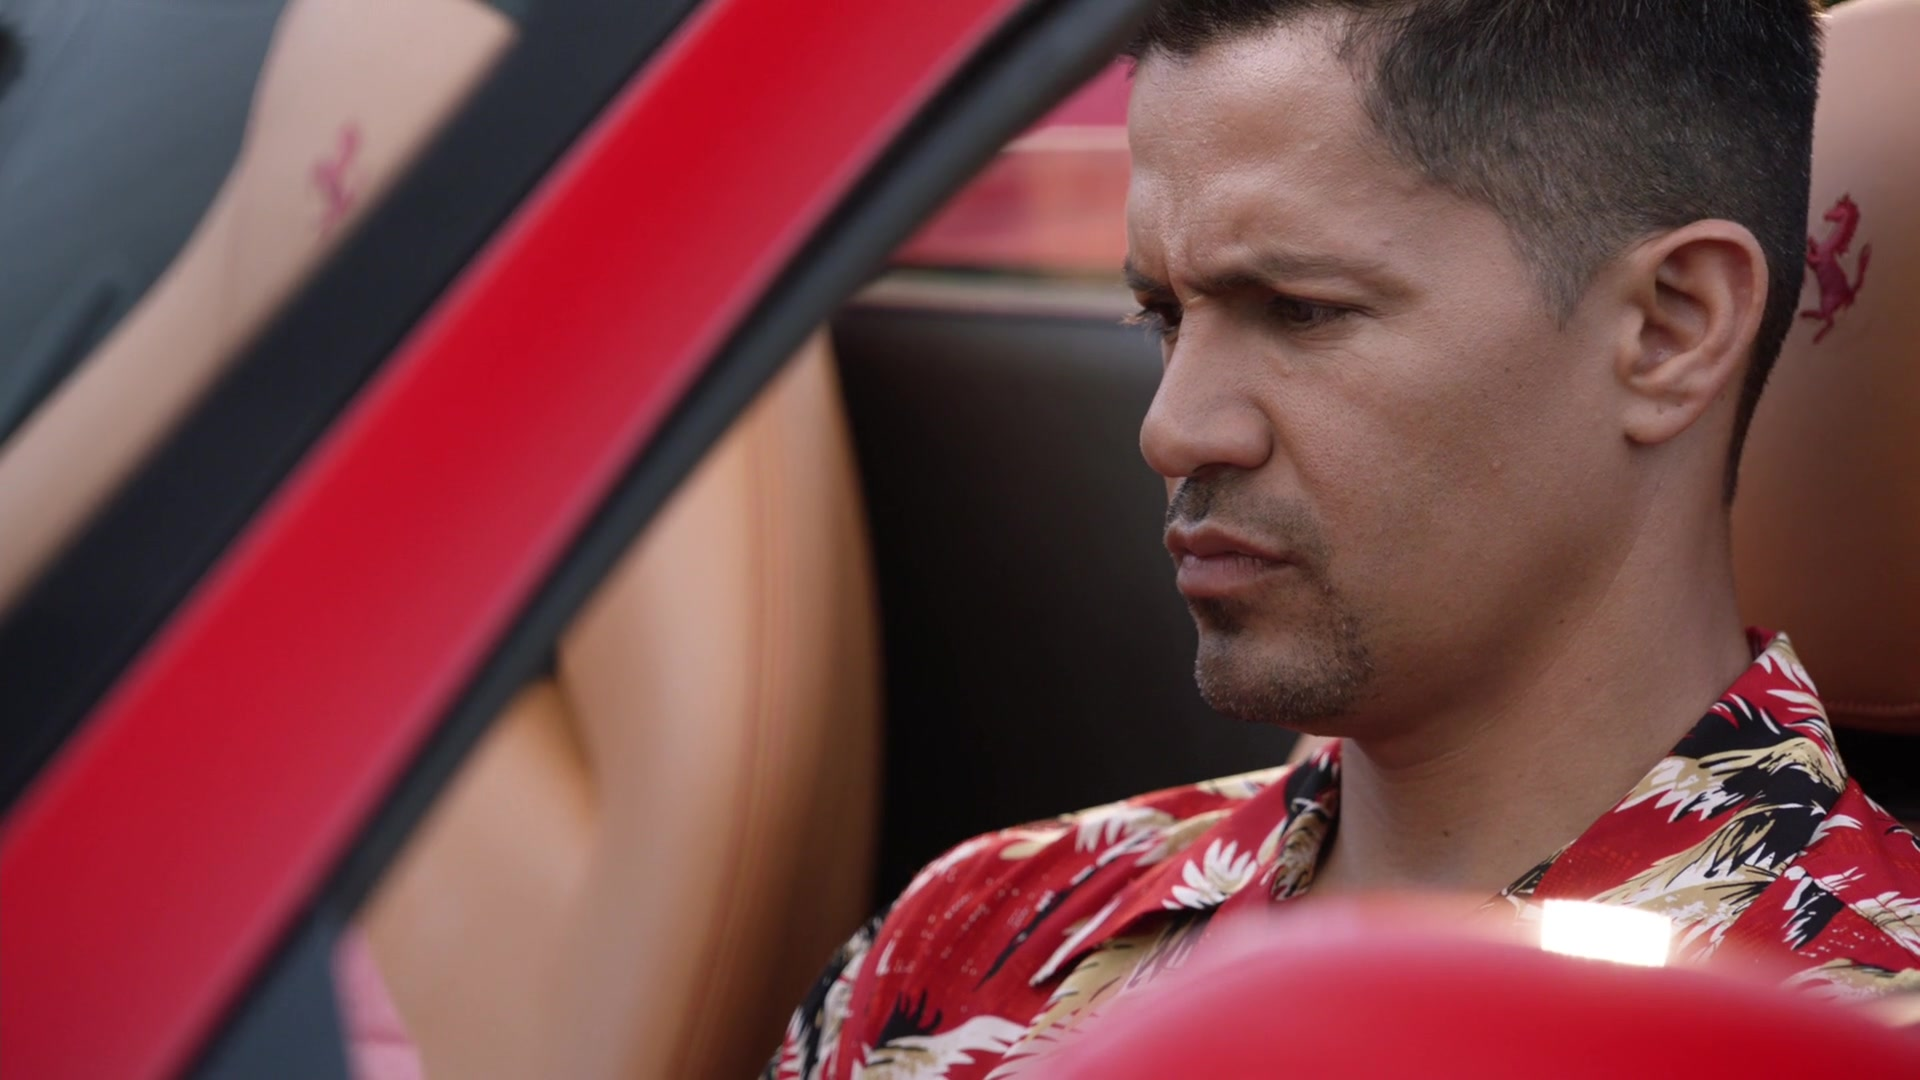 Ferrari 488 Spider Red Sports Car Used by Jay Hernandez in ...